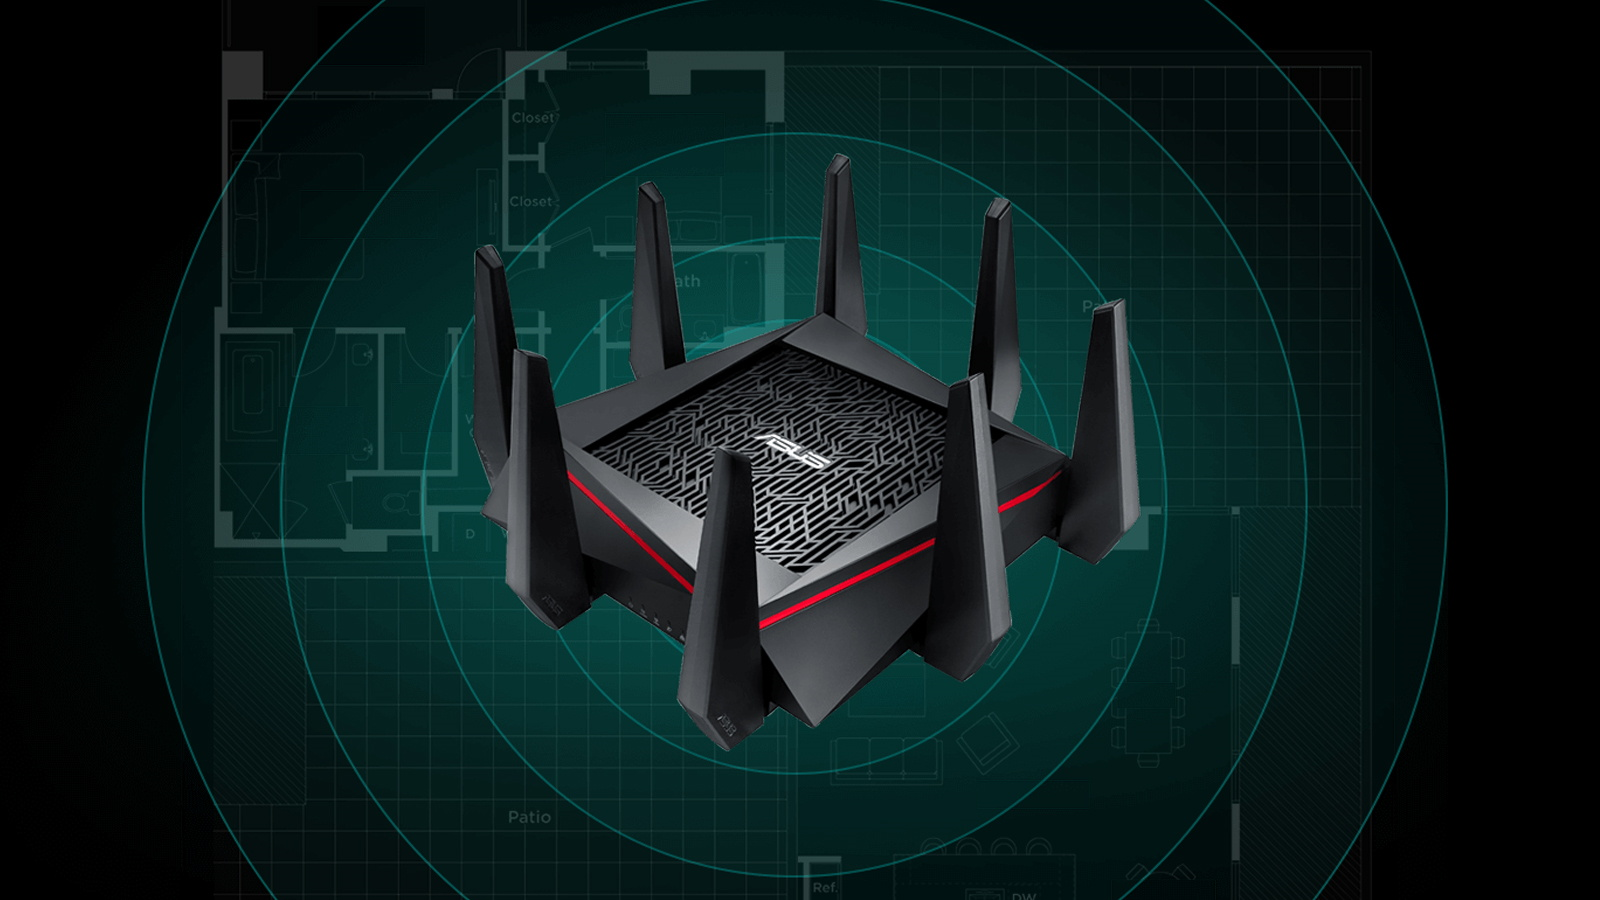 20 Best DD-WRT Routers to Buy in 2019 | TechNadu